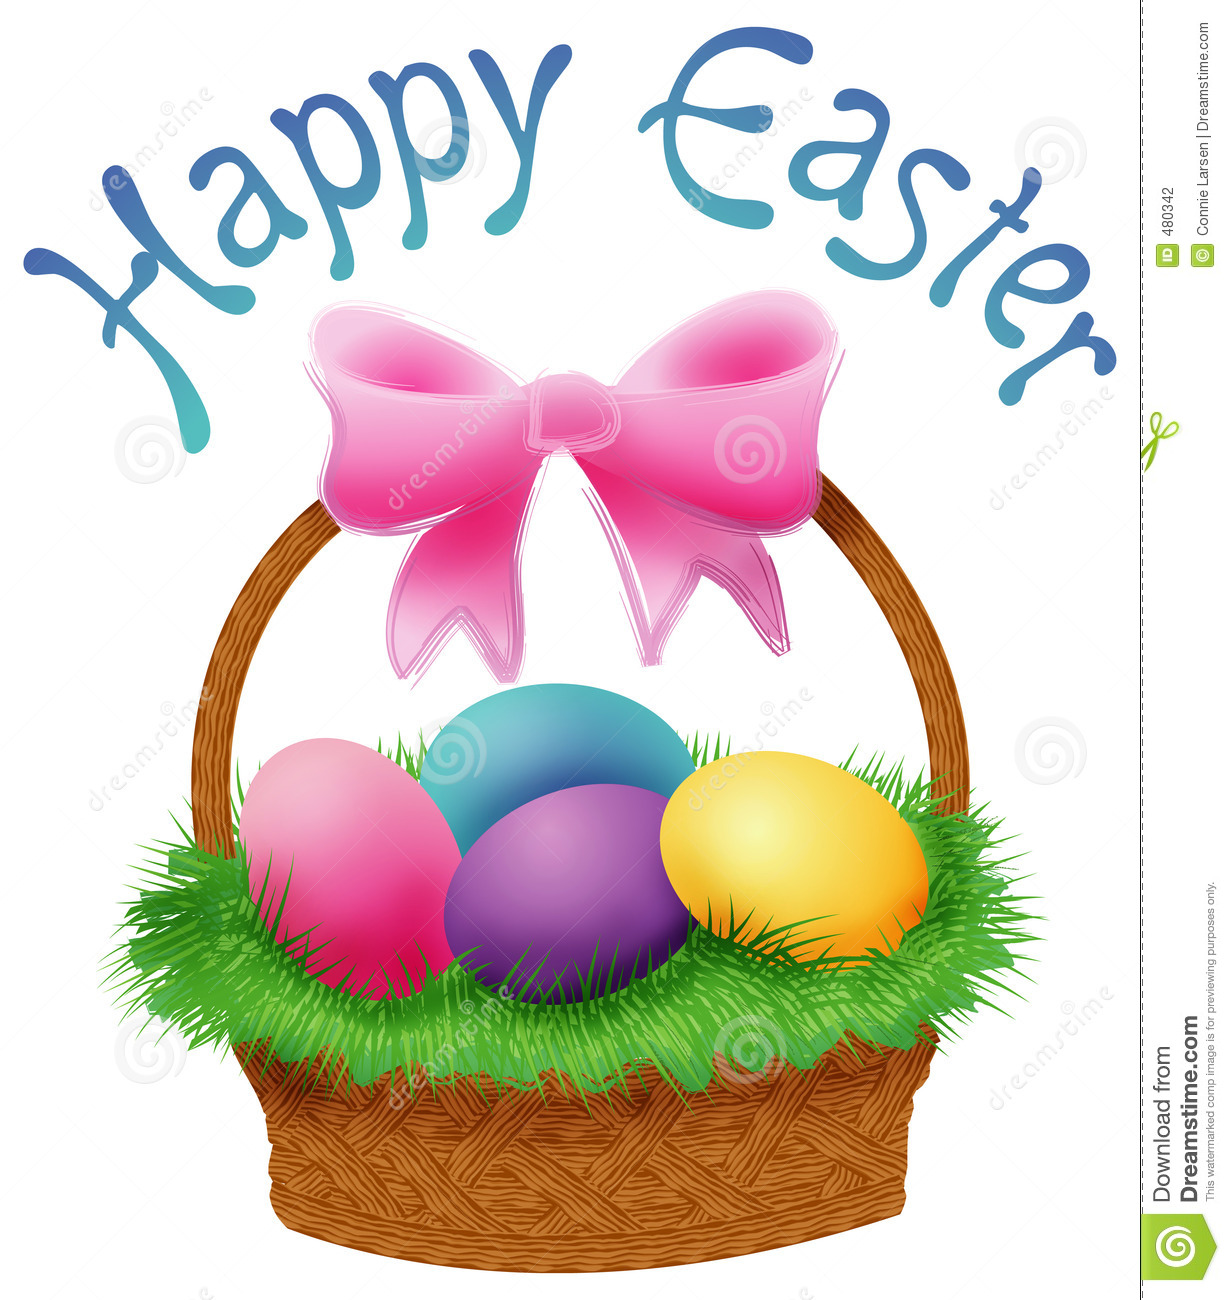 Basket clipart easter jpg transparent Happy Easter Basket Clipart jpg transparent